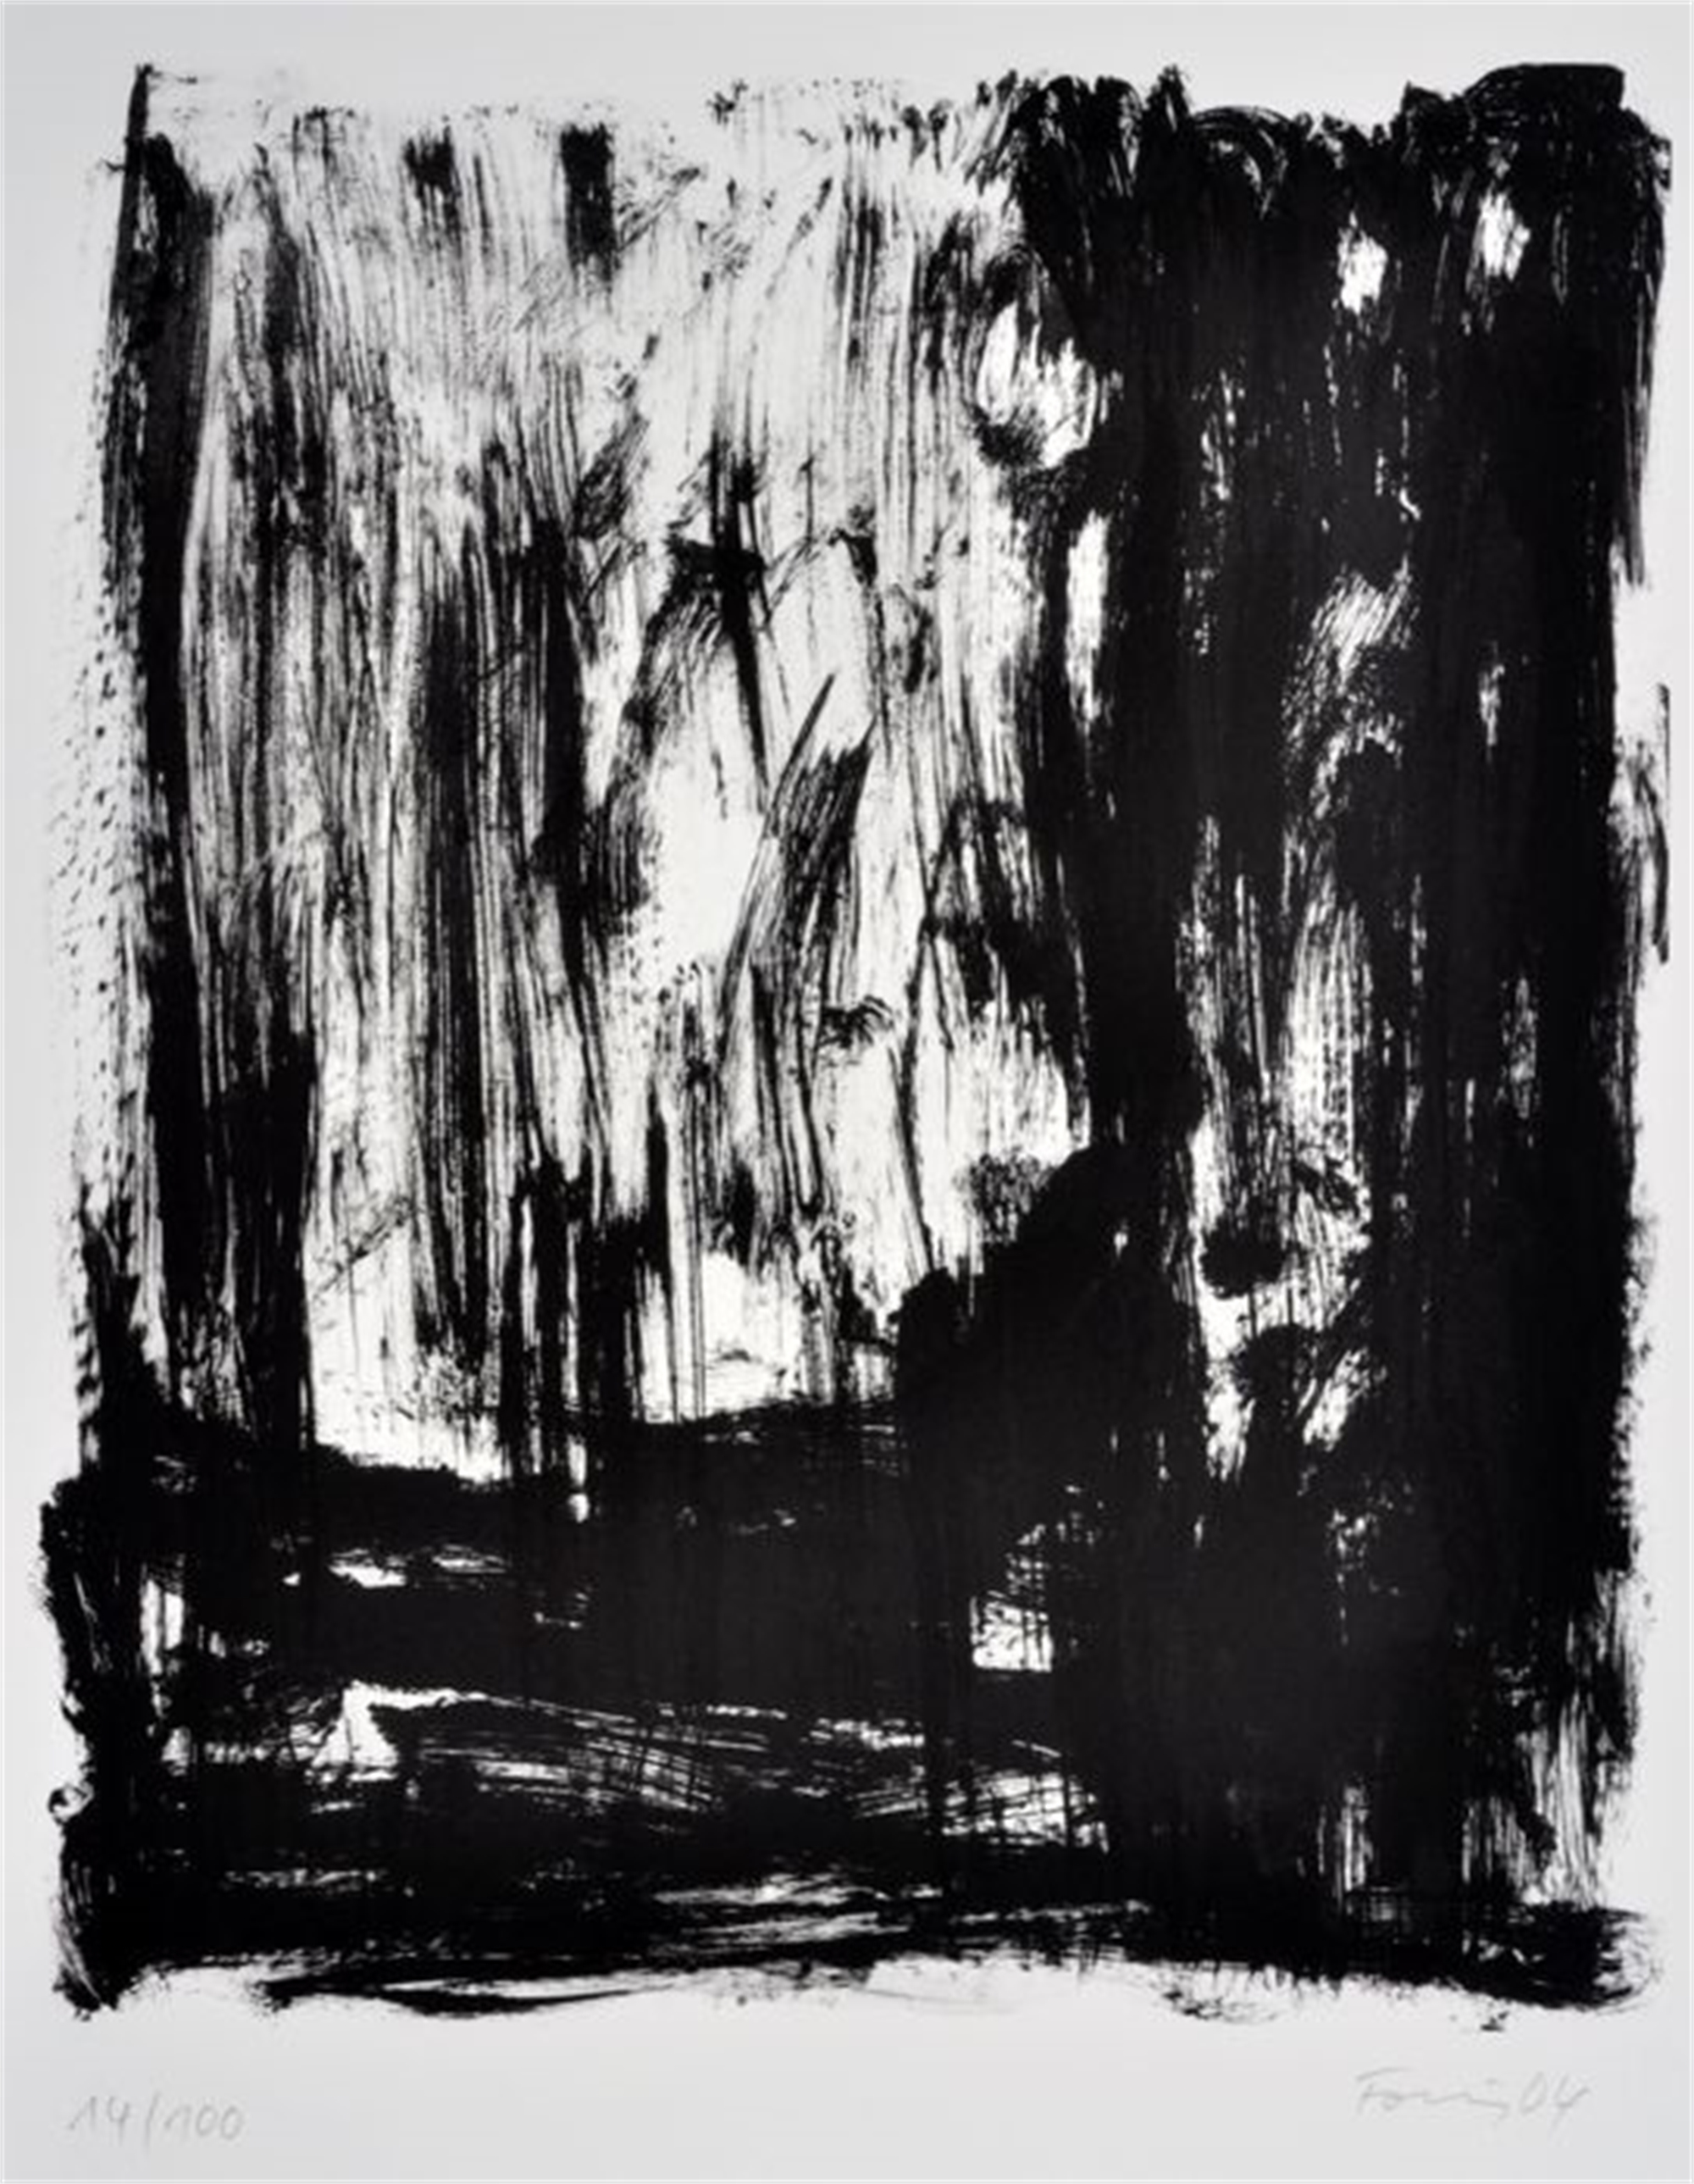 Untitled (Homage to Jan Hoet) by Gunther Forg